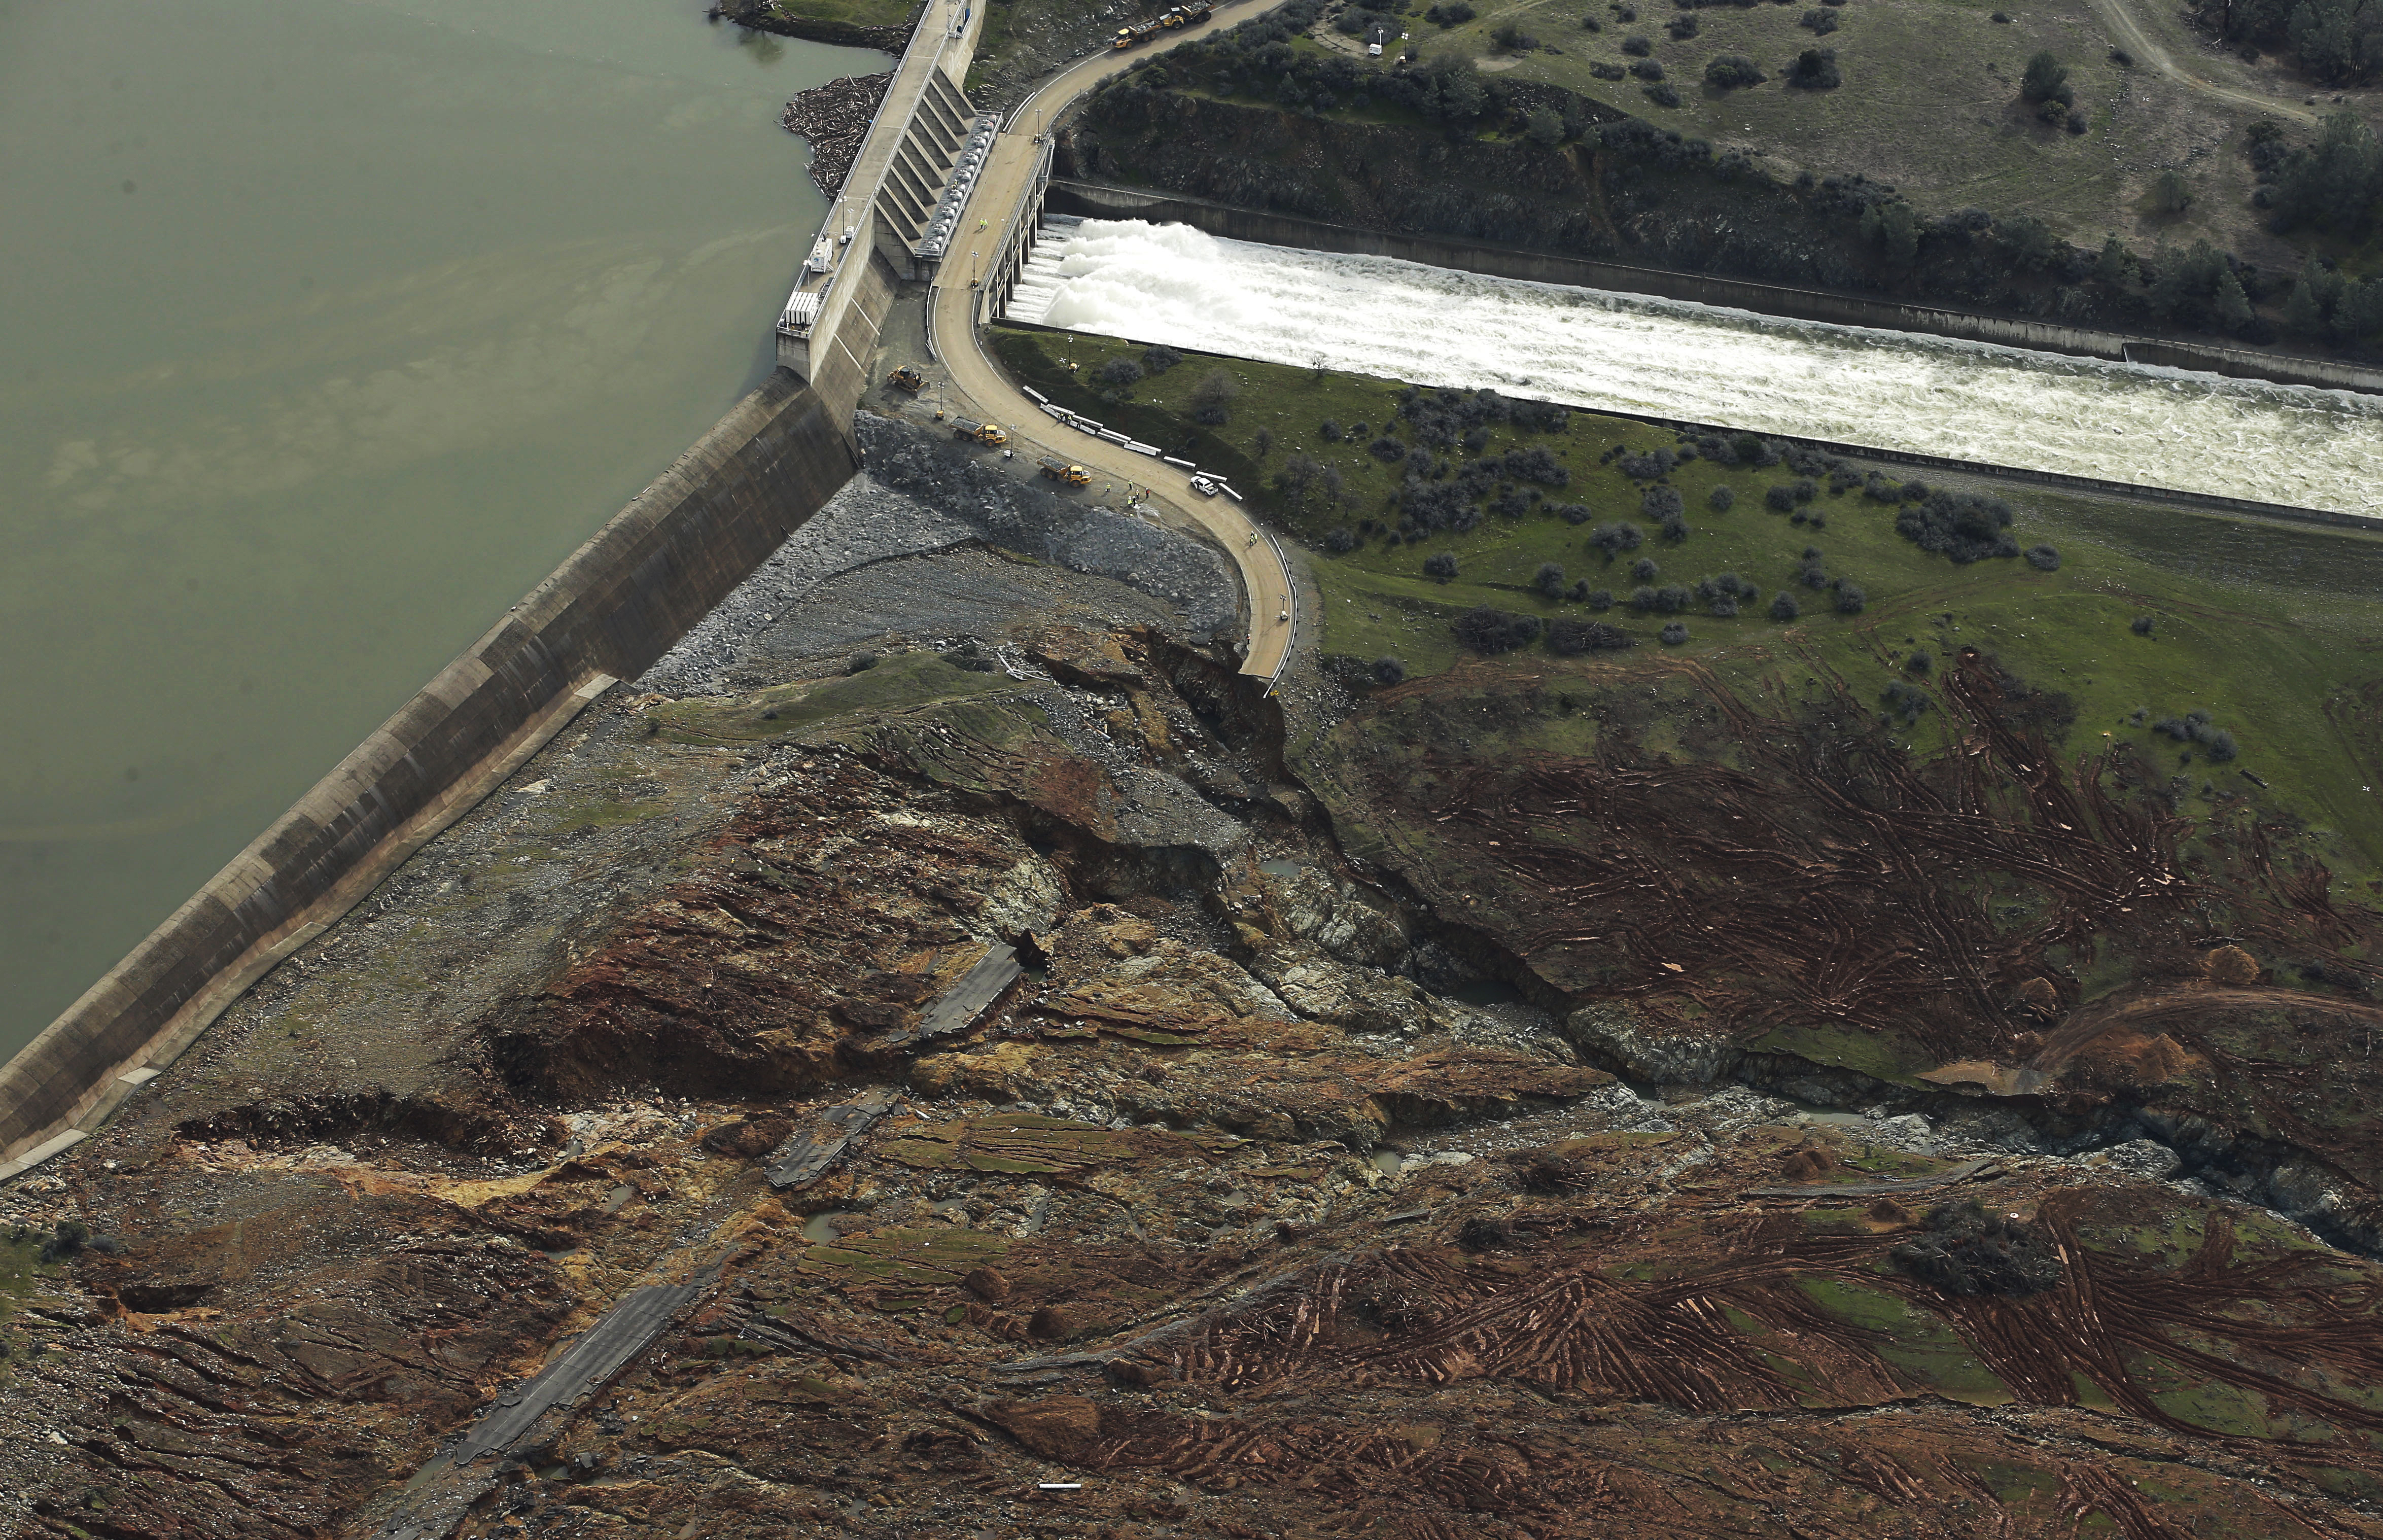 Water gushes down spillway of America's tallest dam for 1st